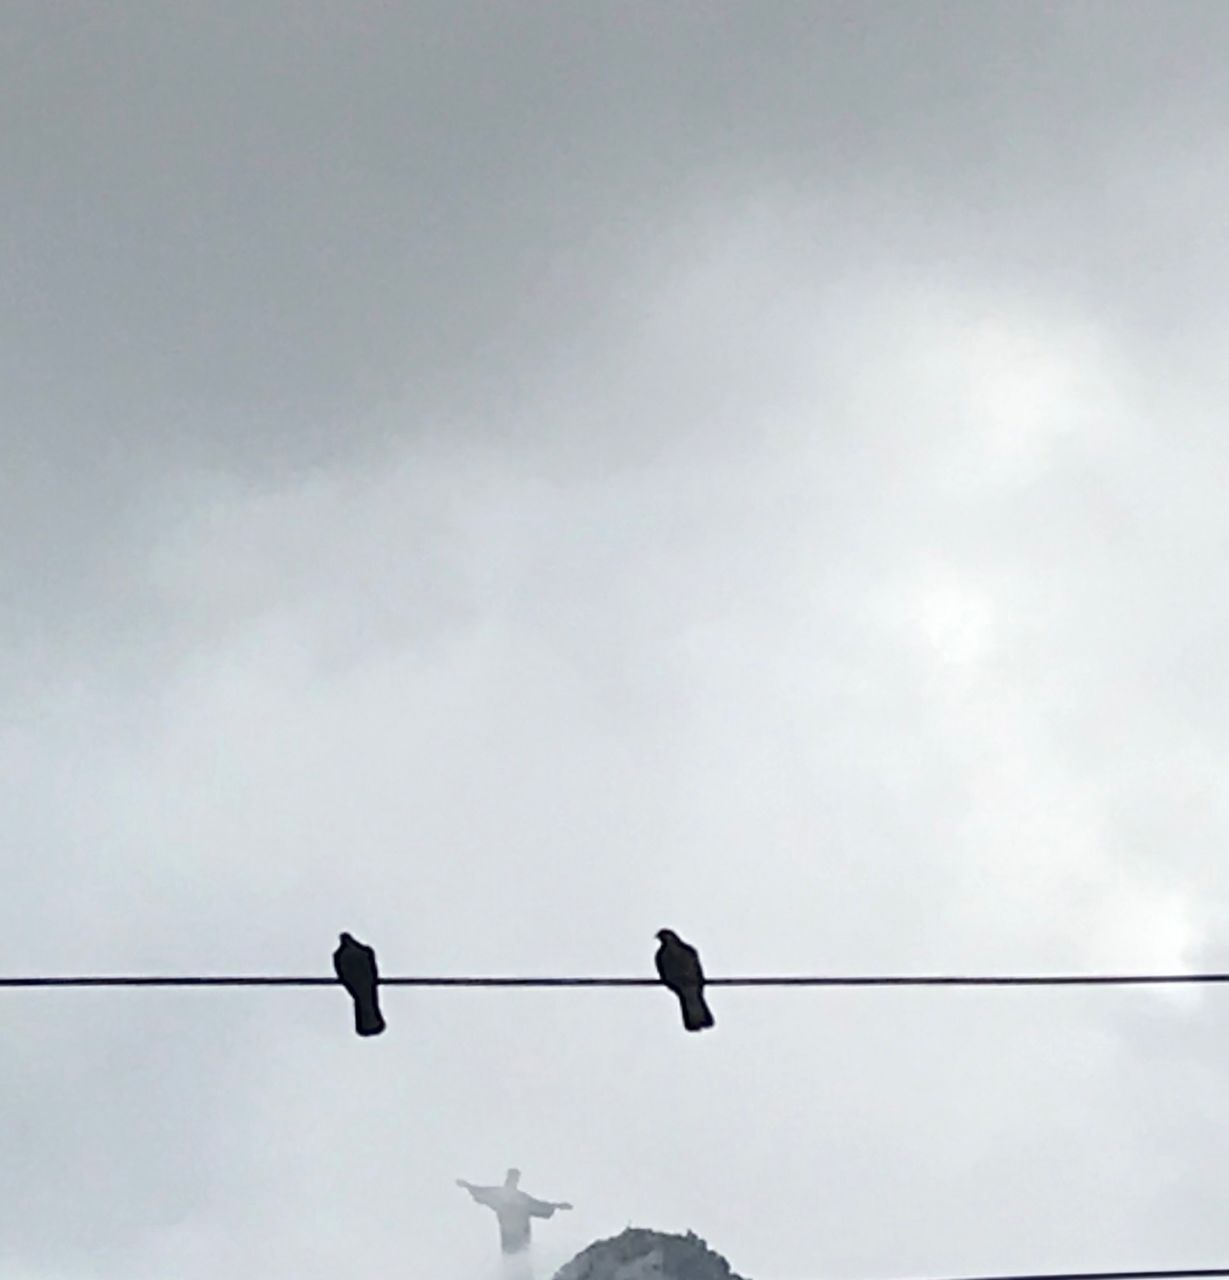 bird, vertebrate, animal, animal wildlife, animals in the wild, animal themes, sky, cable, perching, group of animals, cloud - sky, power line, low angle view, silhouette, electricity, connection, nature, no people, day, outdoors, power supply